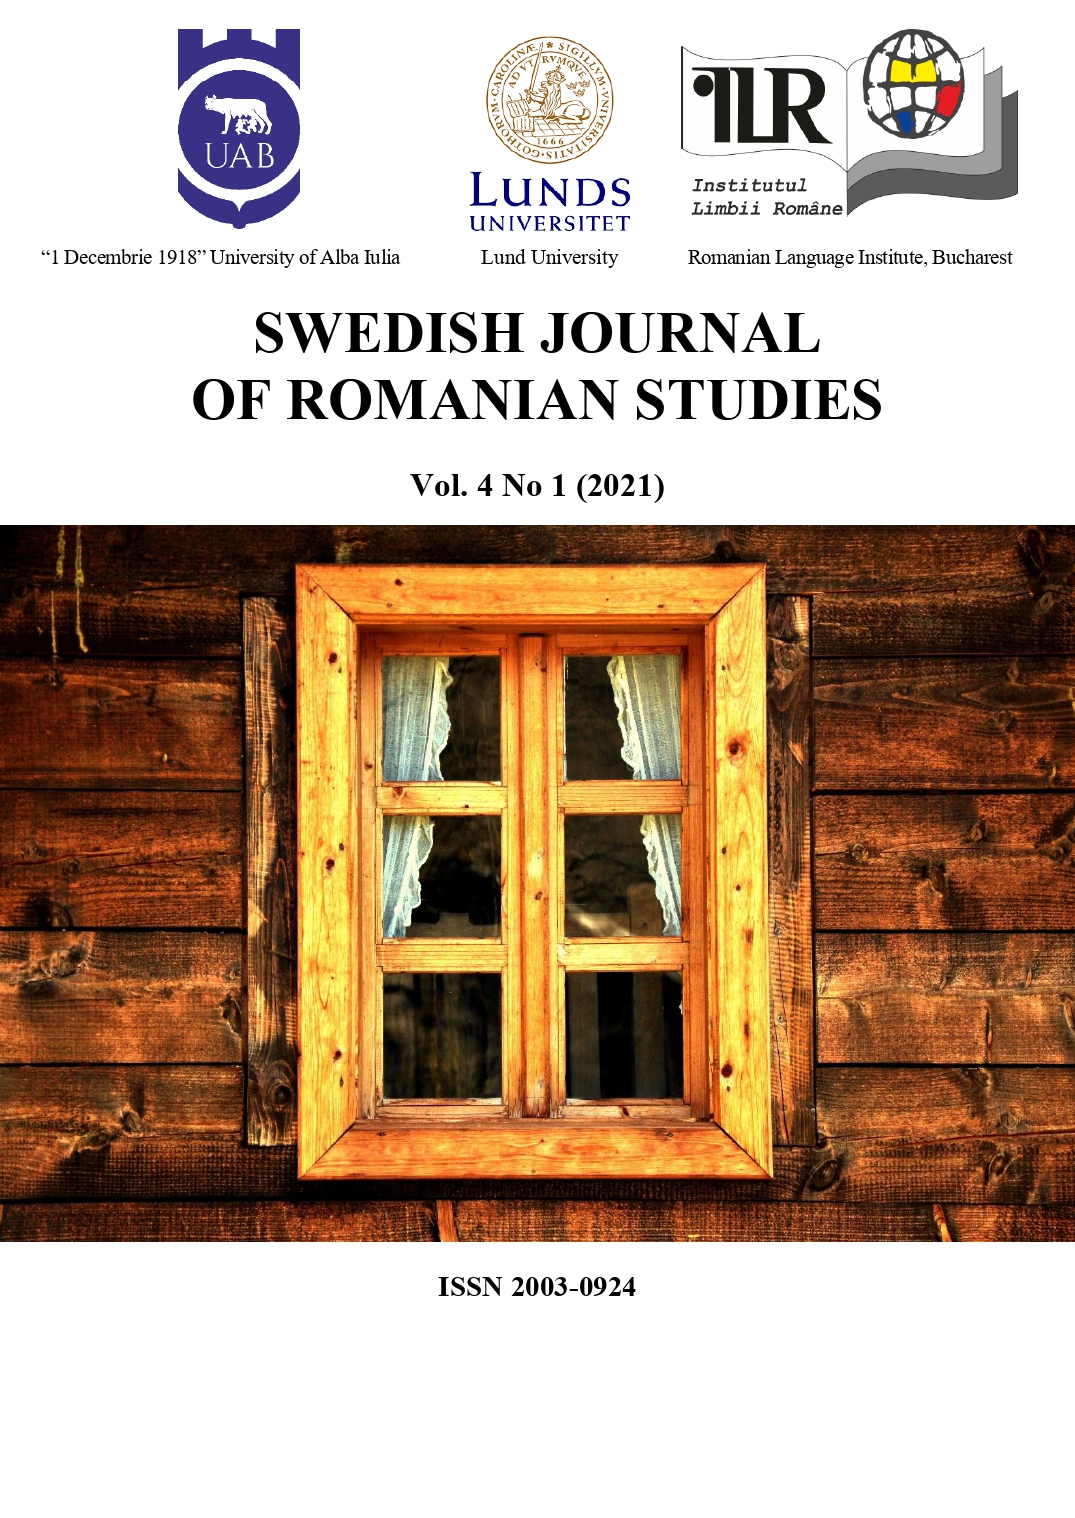 The cover photo was taken on April 20th, 2011 and represents the window to the reconstructed house of Fefeleaga in Bucium, Alba County, Romania